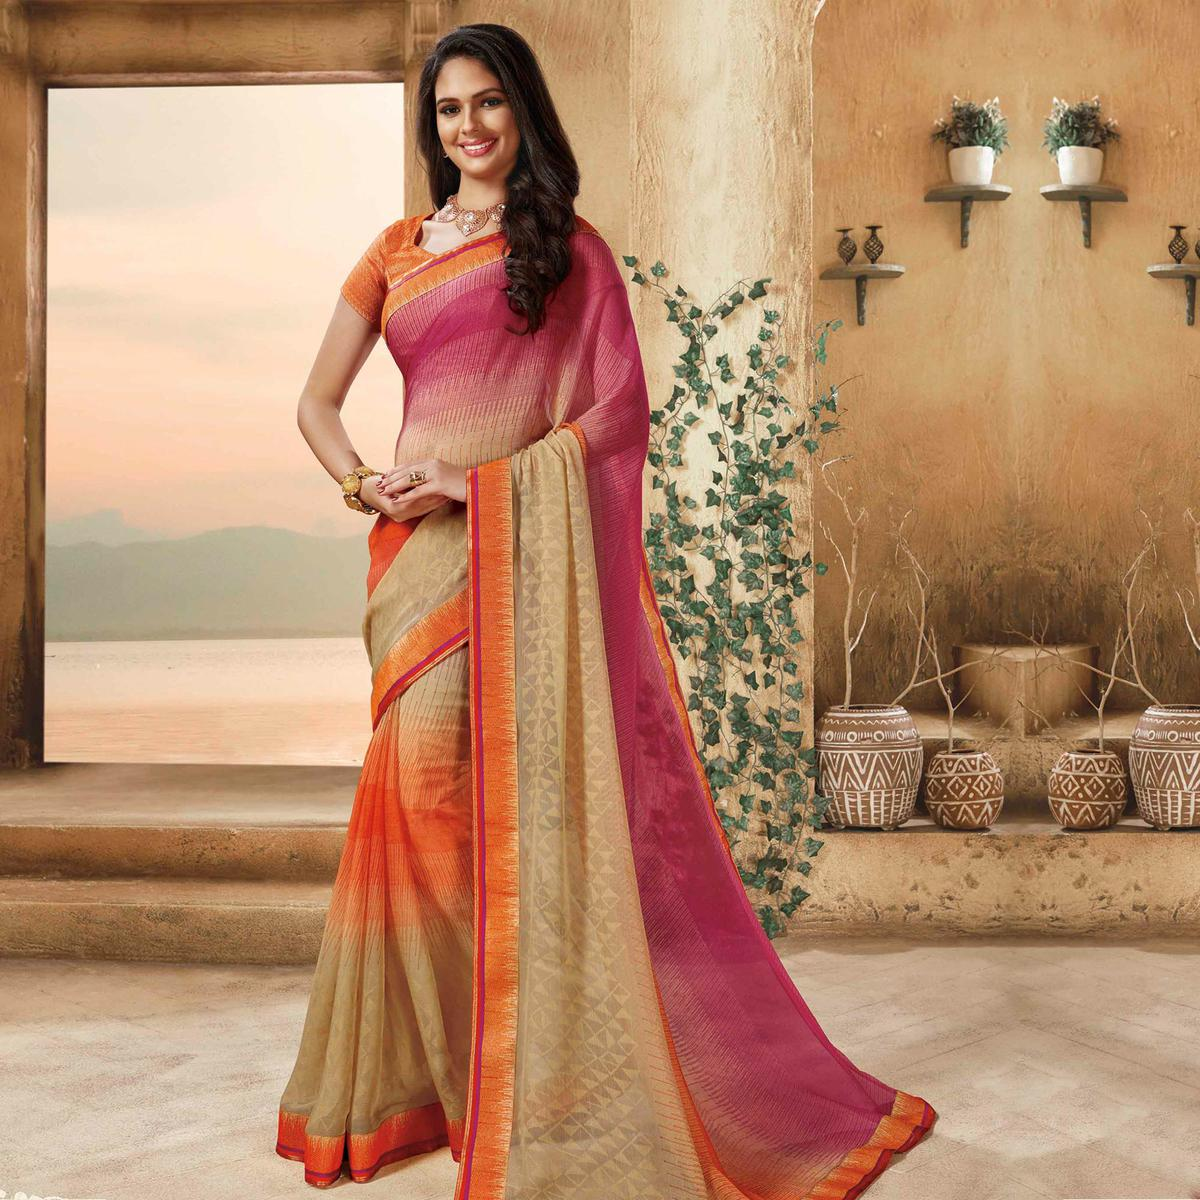 Charming Pink - Cream Colored Partywear Printed Brasso Saree